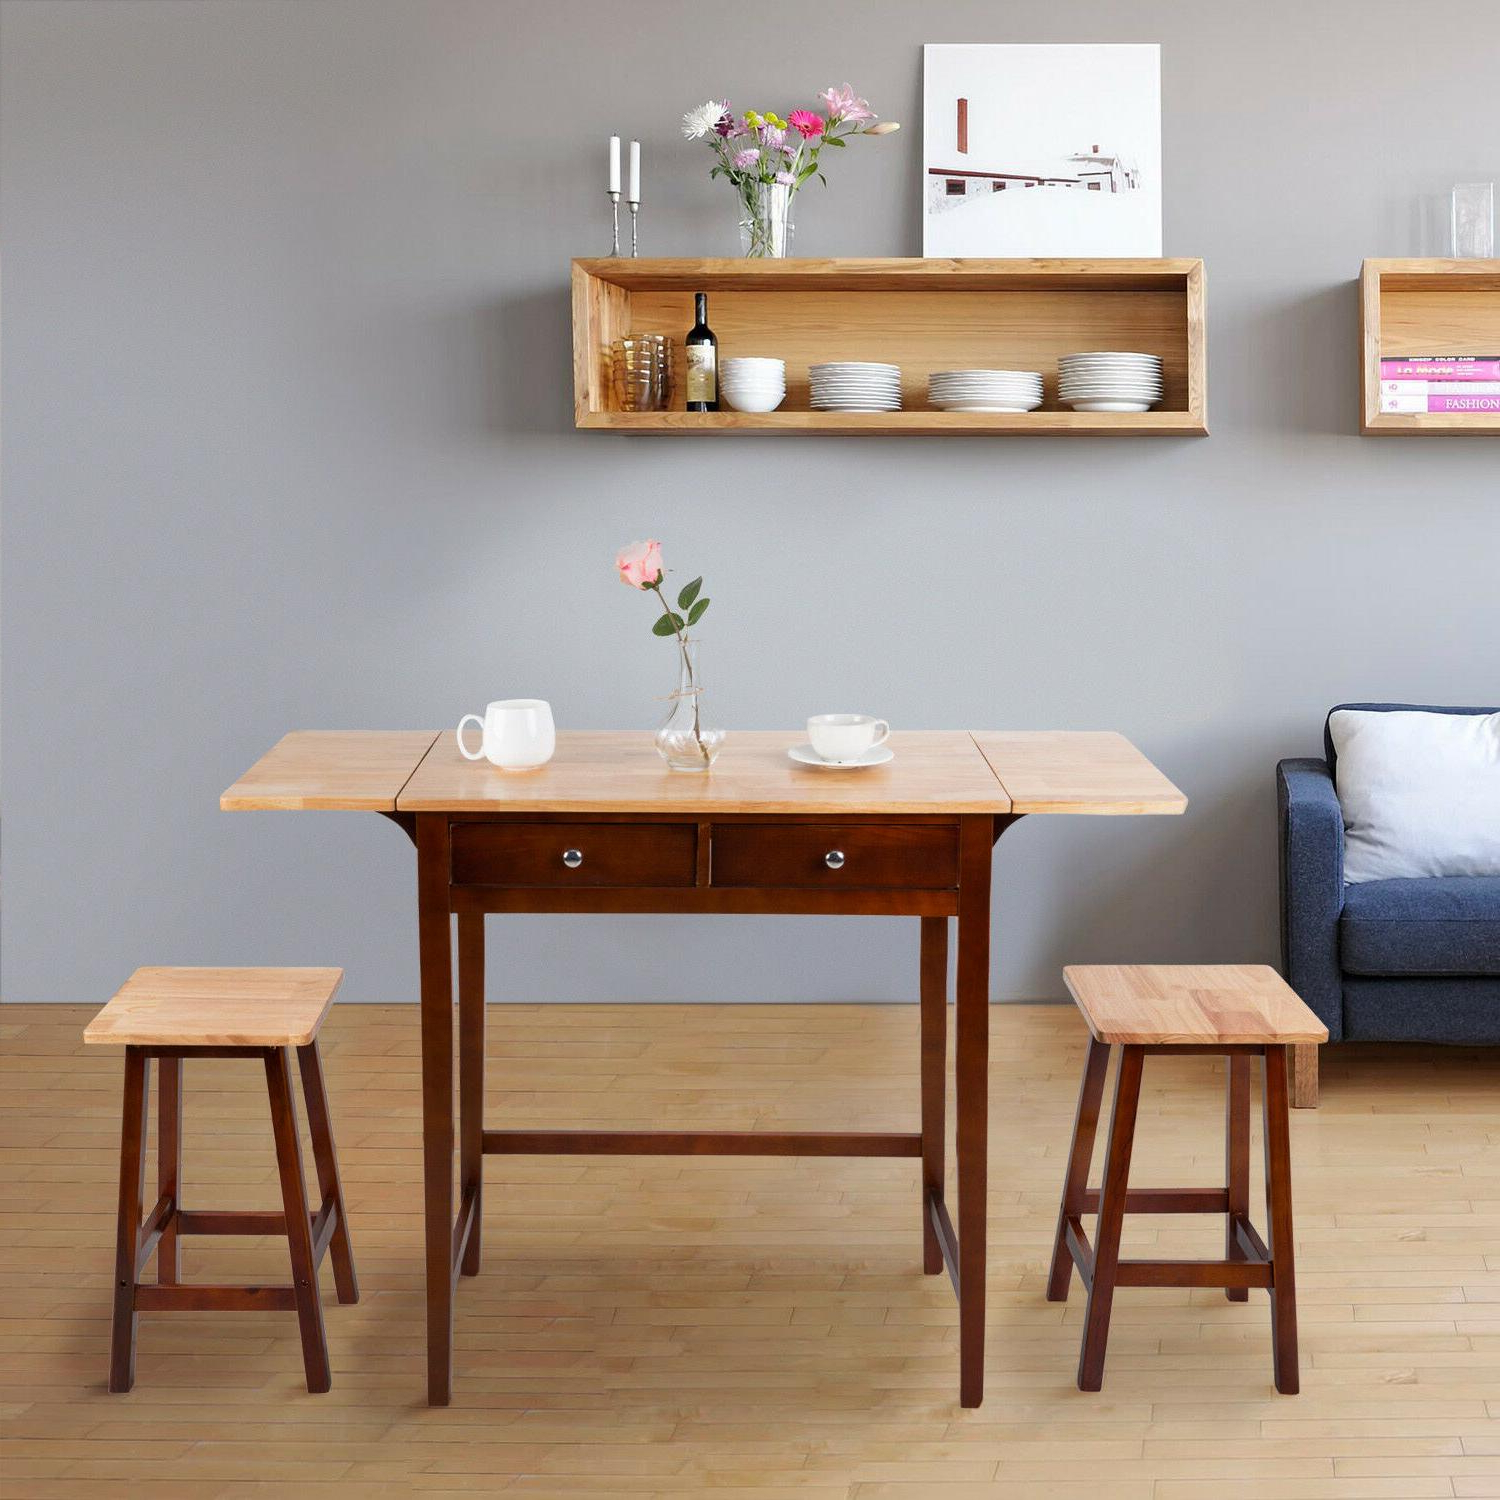 Wooden 3 Piece Table Dining Set Rolling Regarding Latest Ligon 3 Piece Breakfast Nook Dining Sets (View 20 of 20)